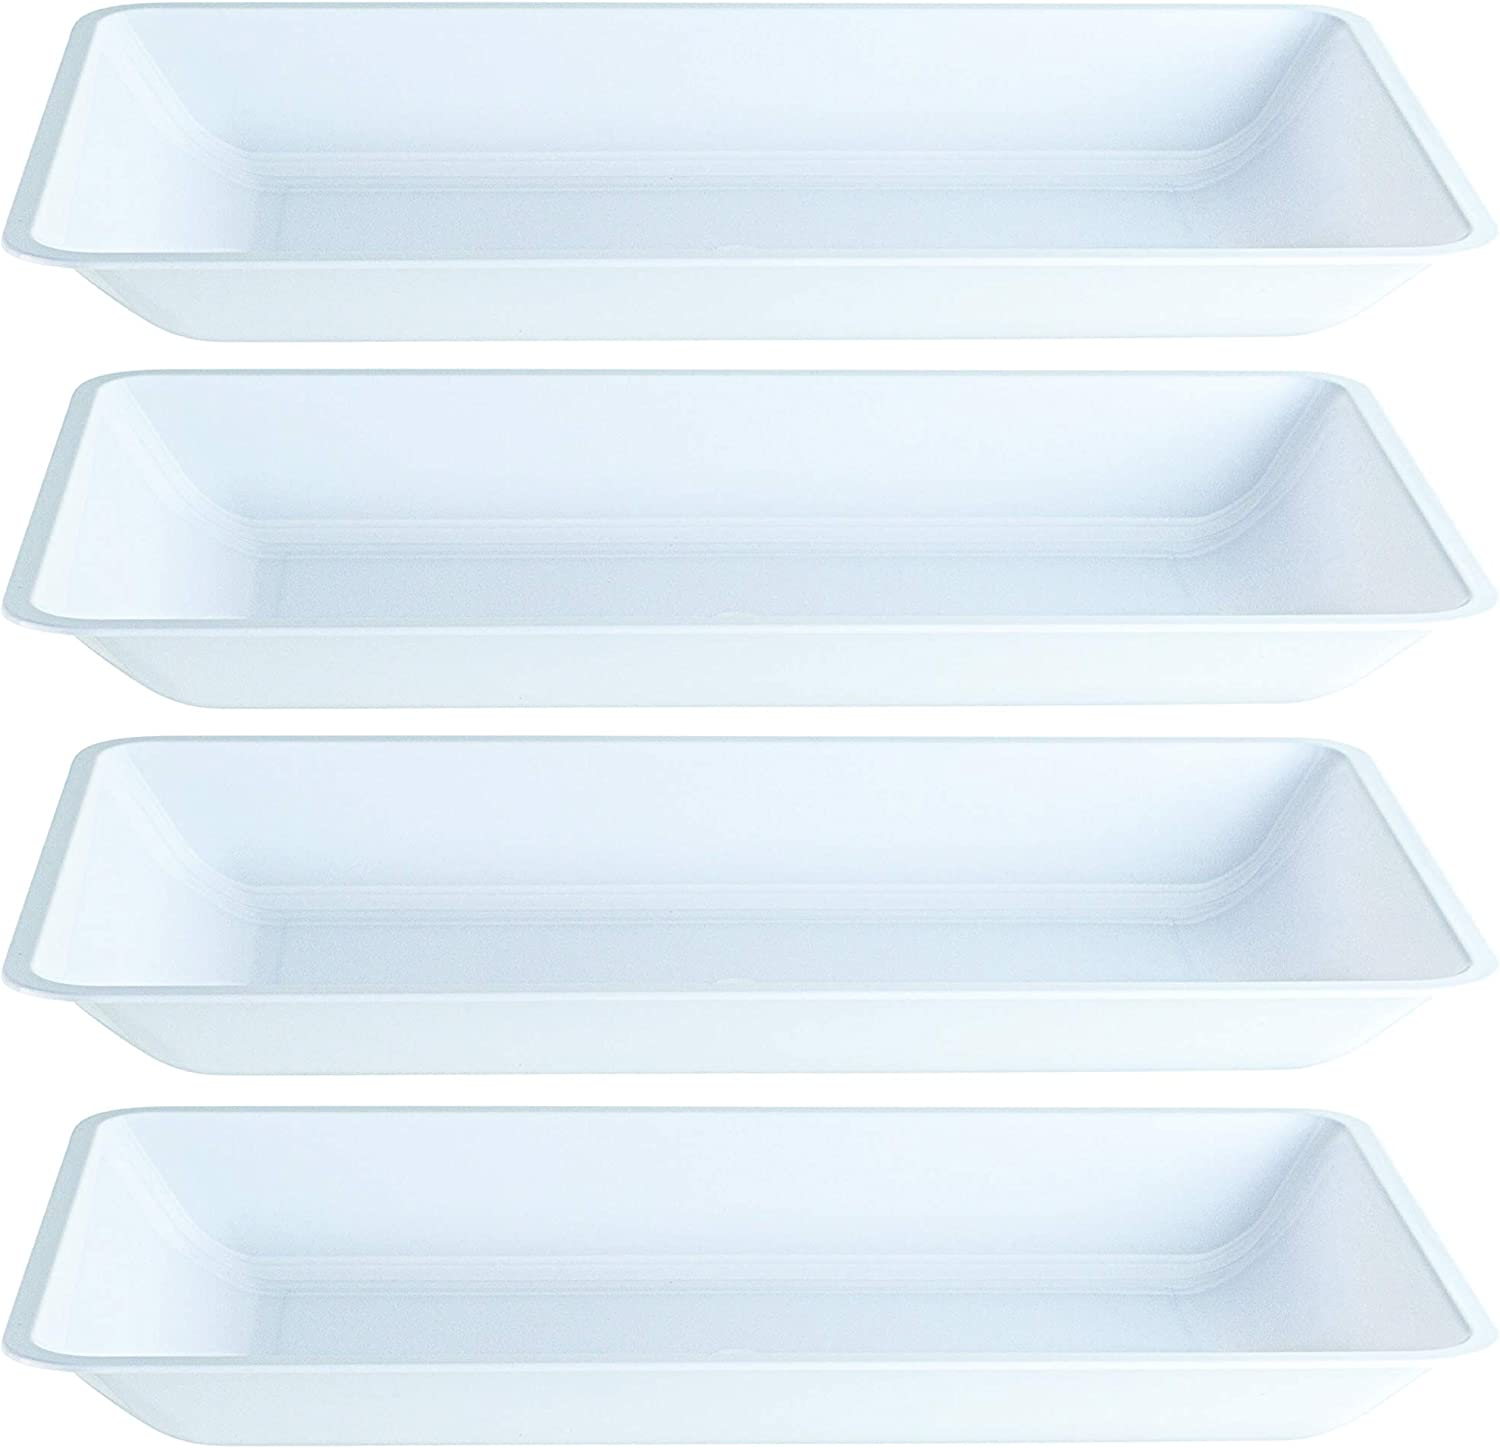 Plasticpro Plastic Serving Trays - Shallow Serving Platters Rectangle 9.5'' X 14'' Disposable Party Dish White, Pack of 4